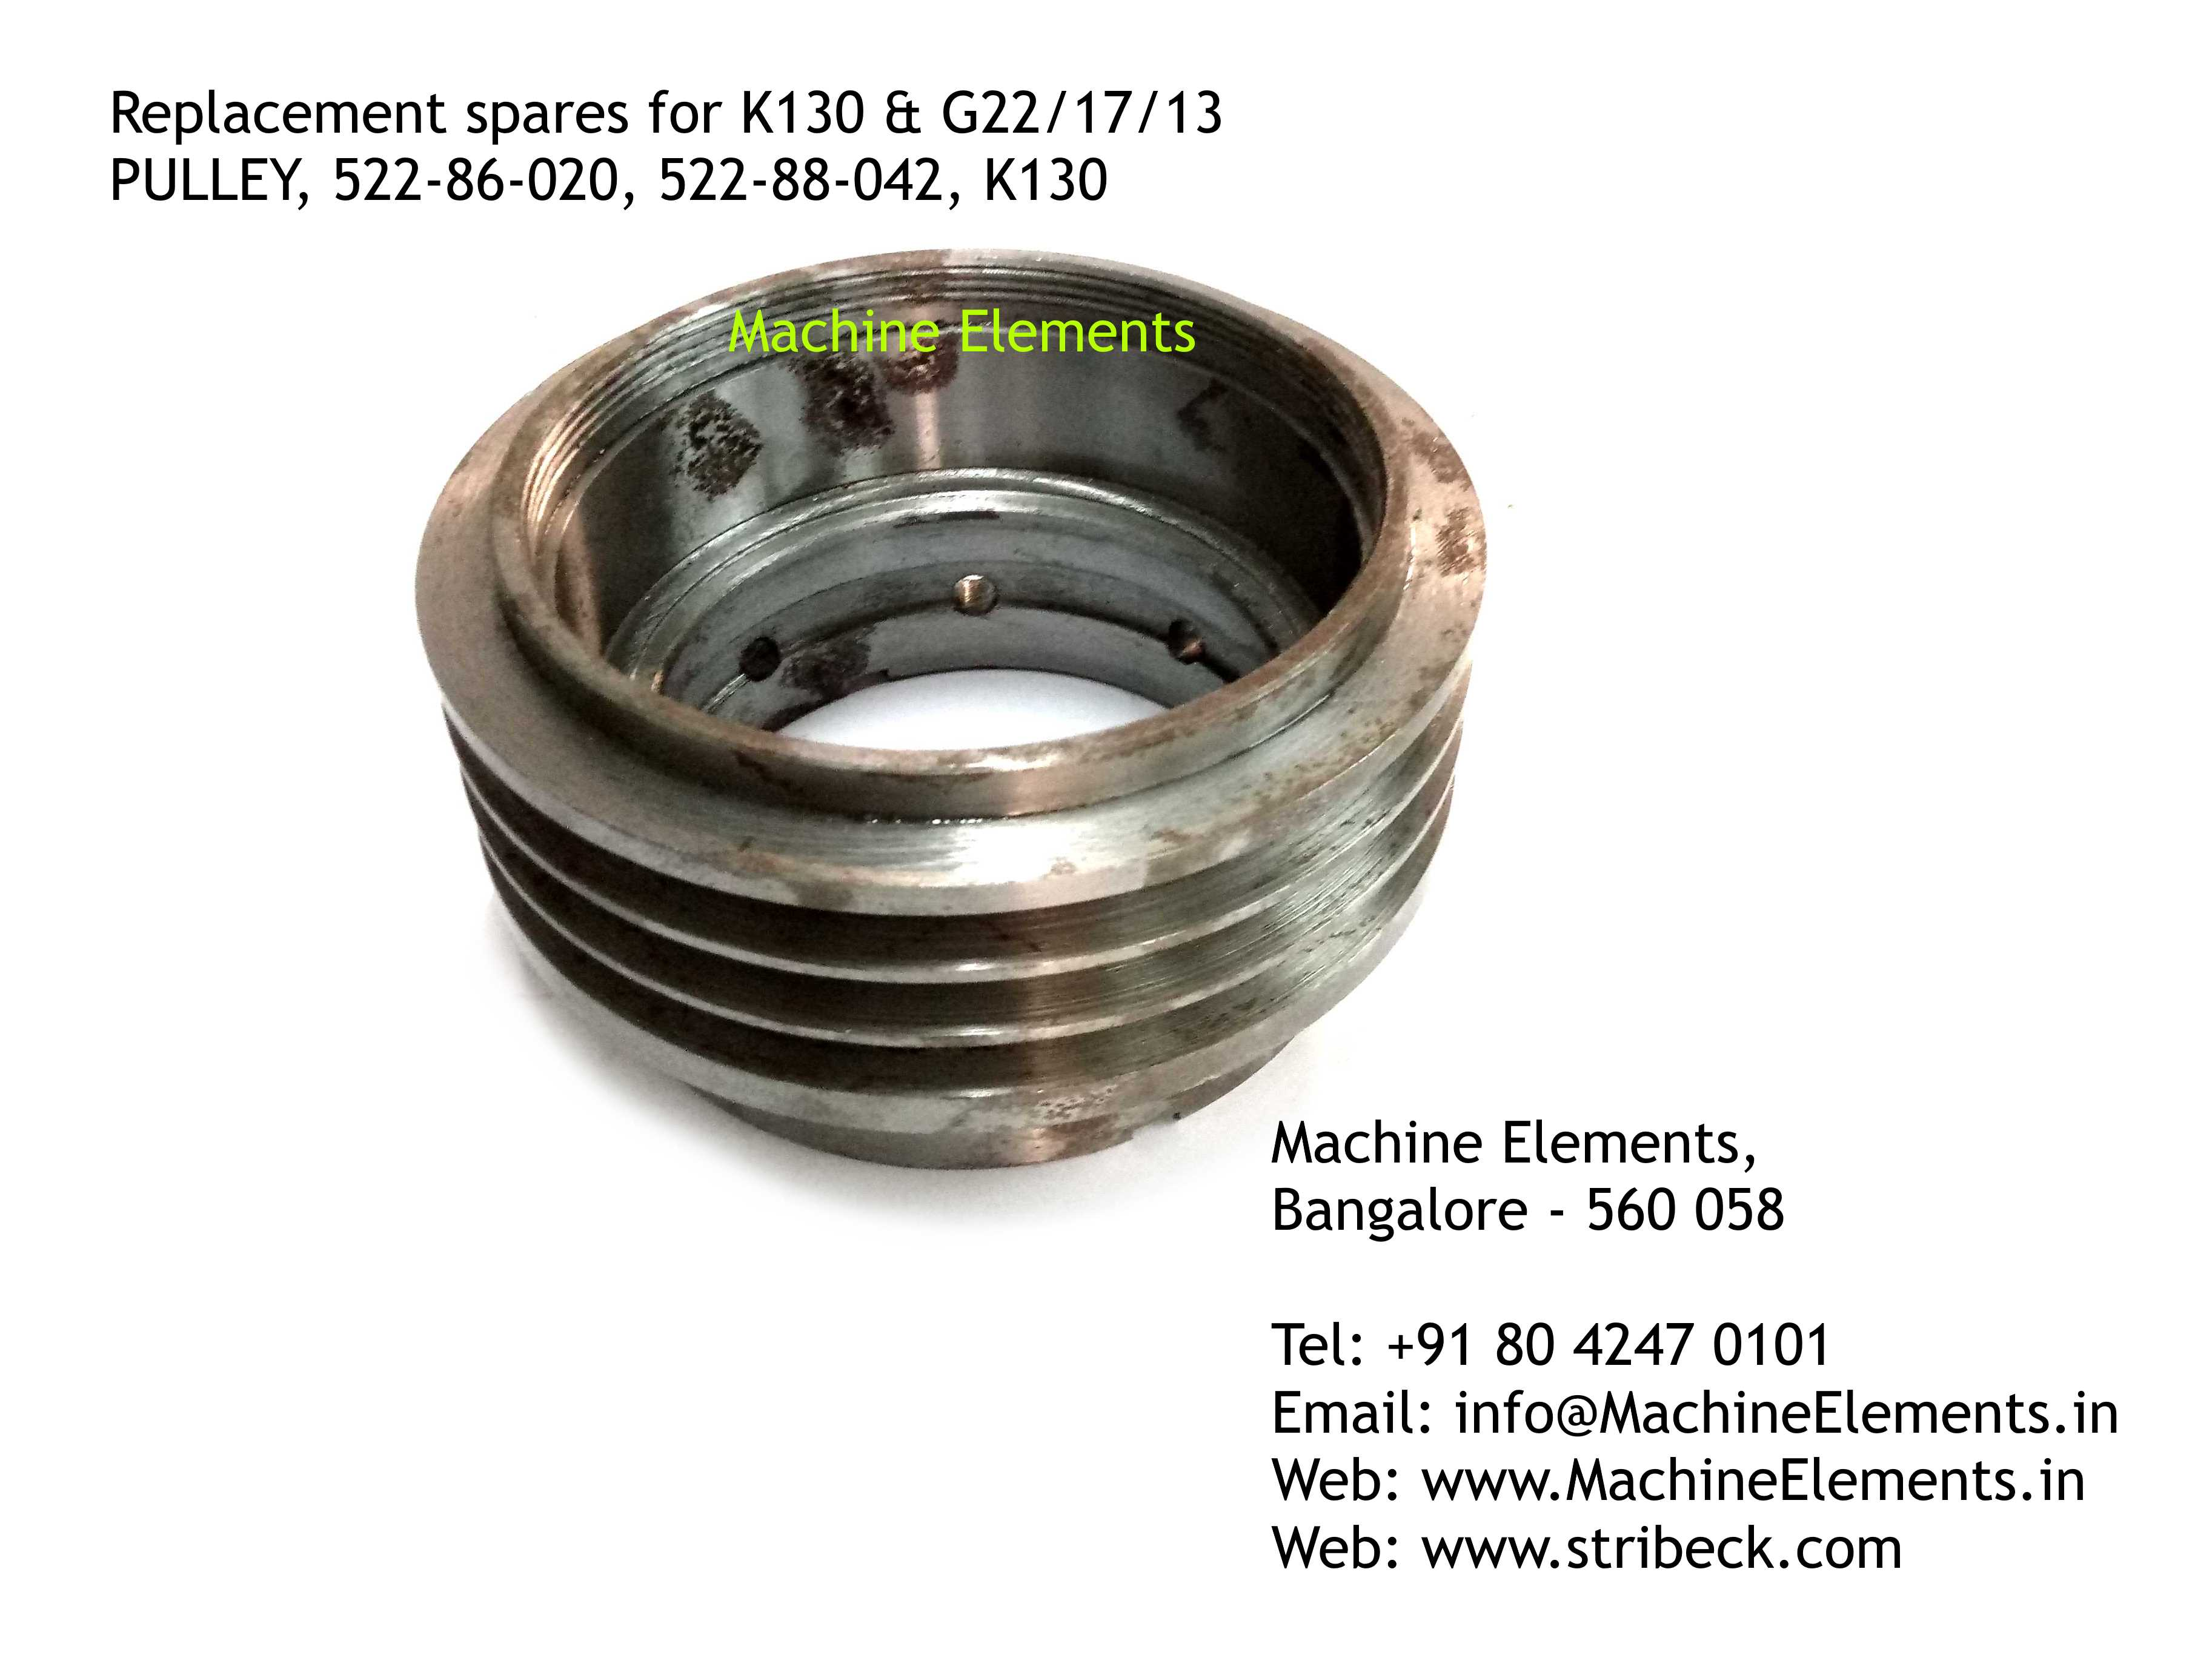 PULLEY, 522-86-020, 522-88-042